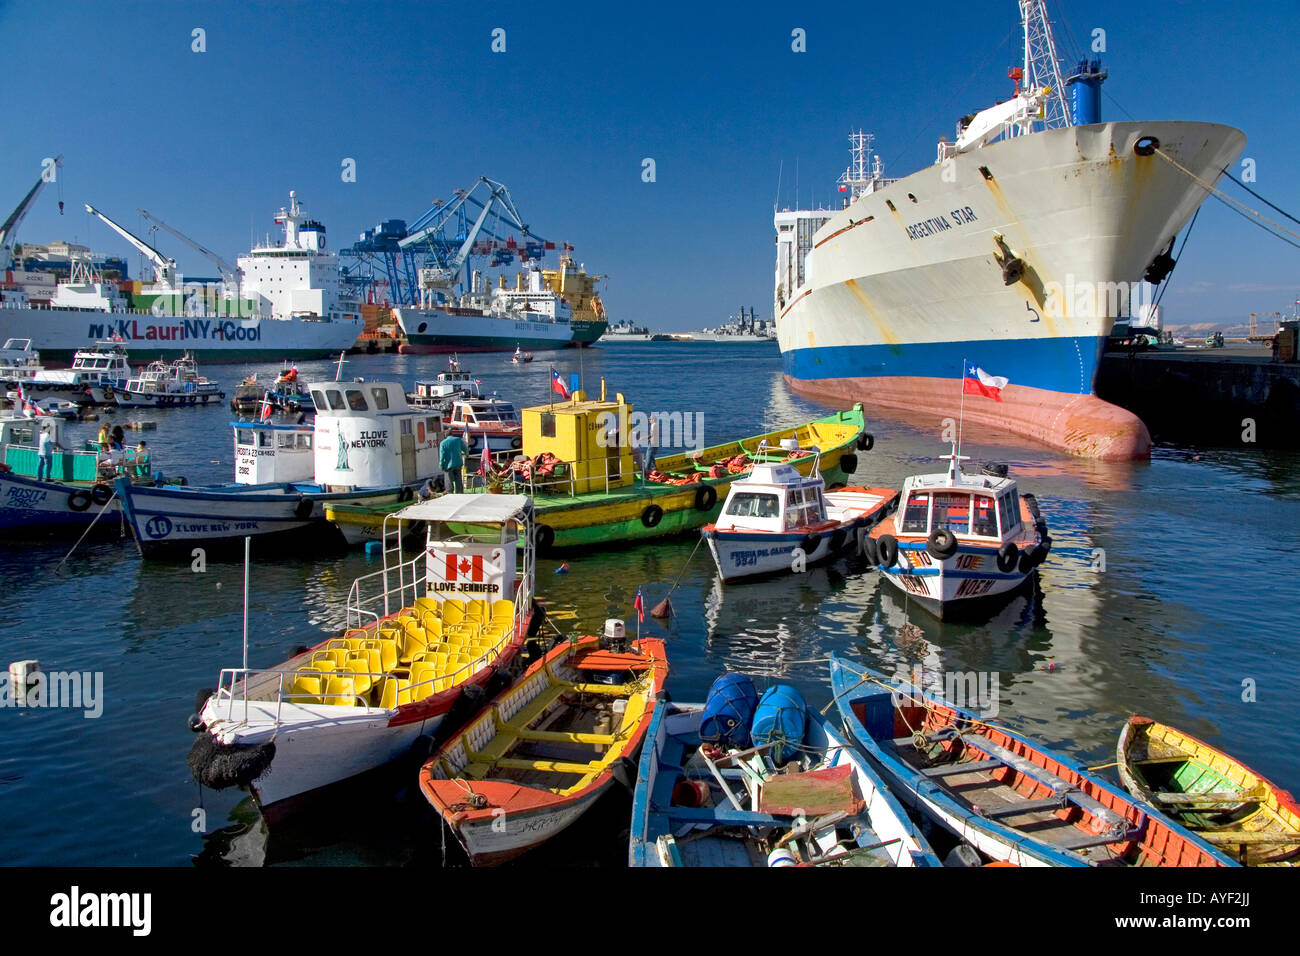 Container ships and small boats in the Port at Valparaiso Chile - Stock Image